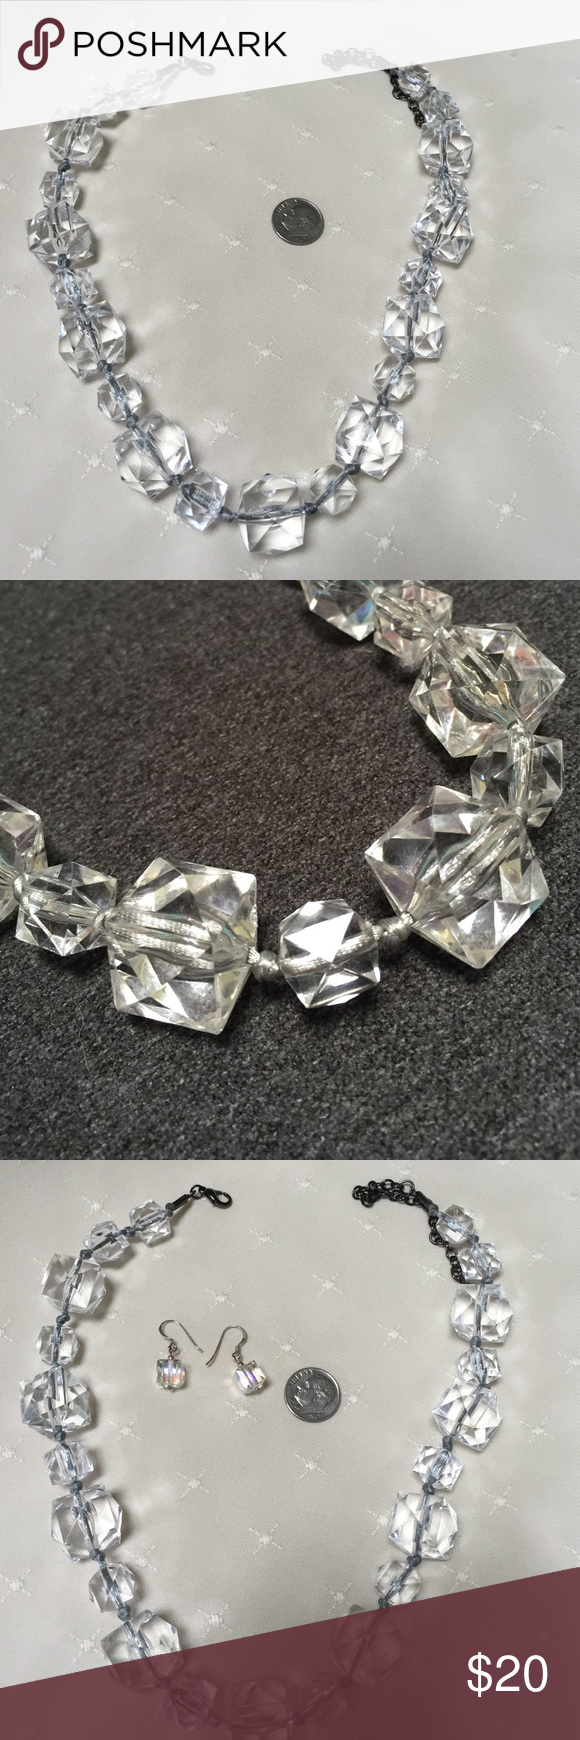 """Acrylic necklace 16"""" with 3"""" extension This listing if for the necklace only but I have the earrings listed as well.  16"""" with 3"""" extension. Jewelry Necklaces"""